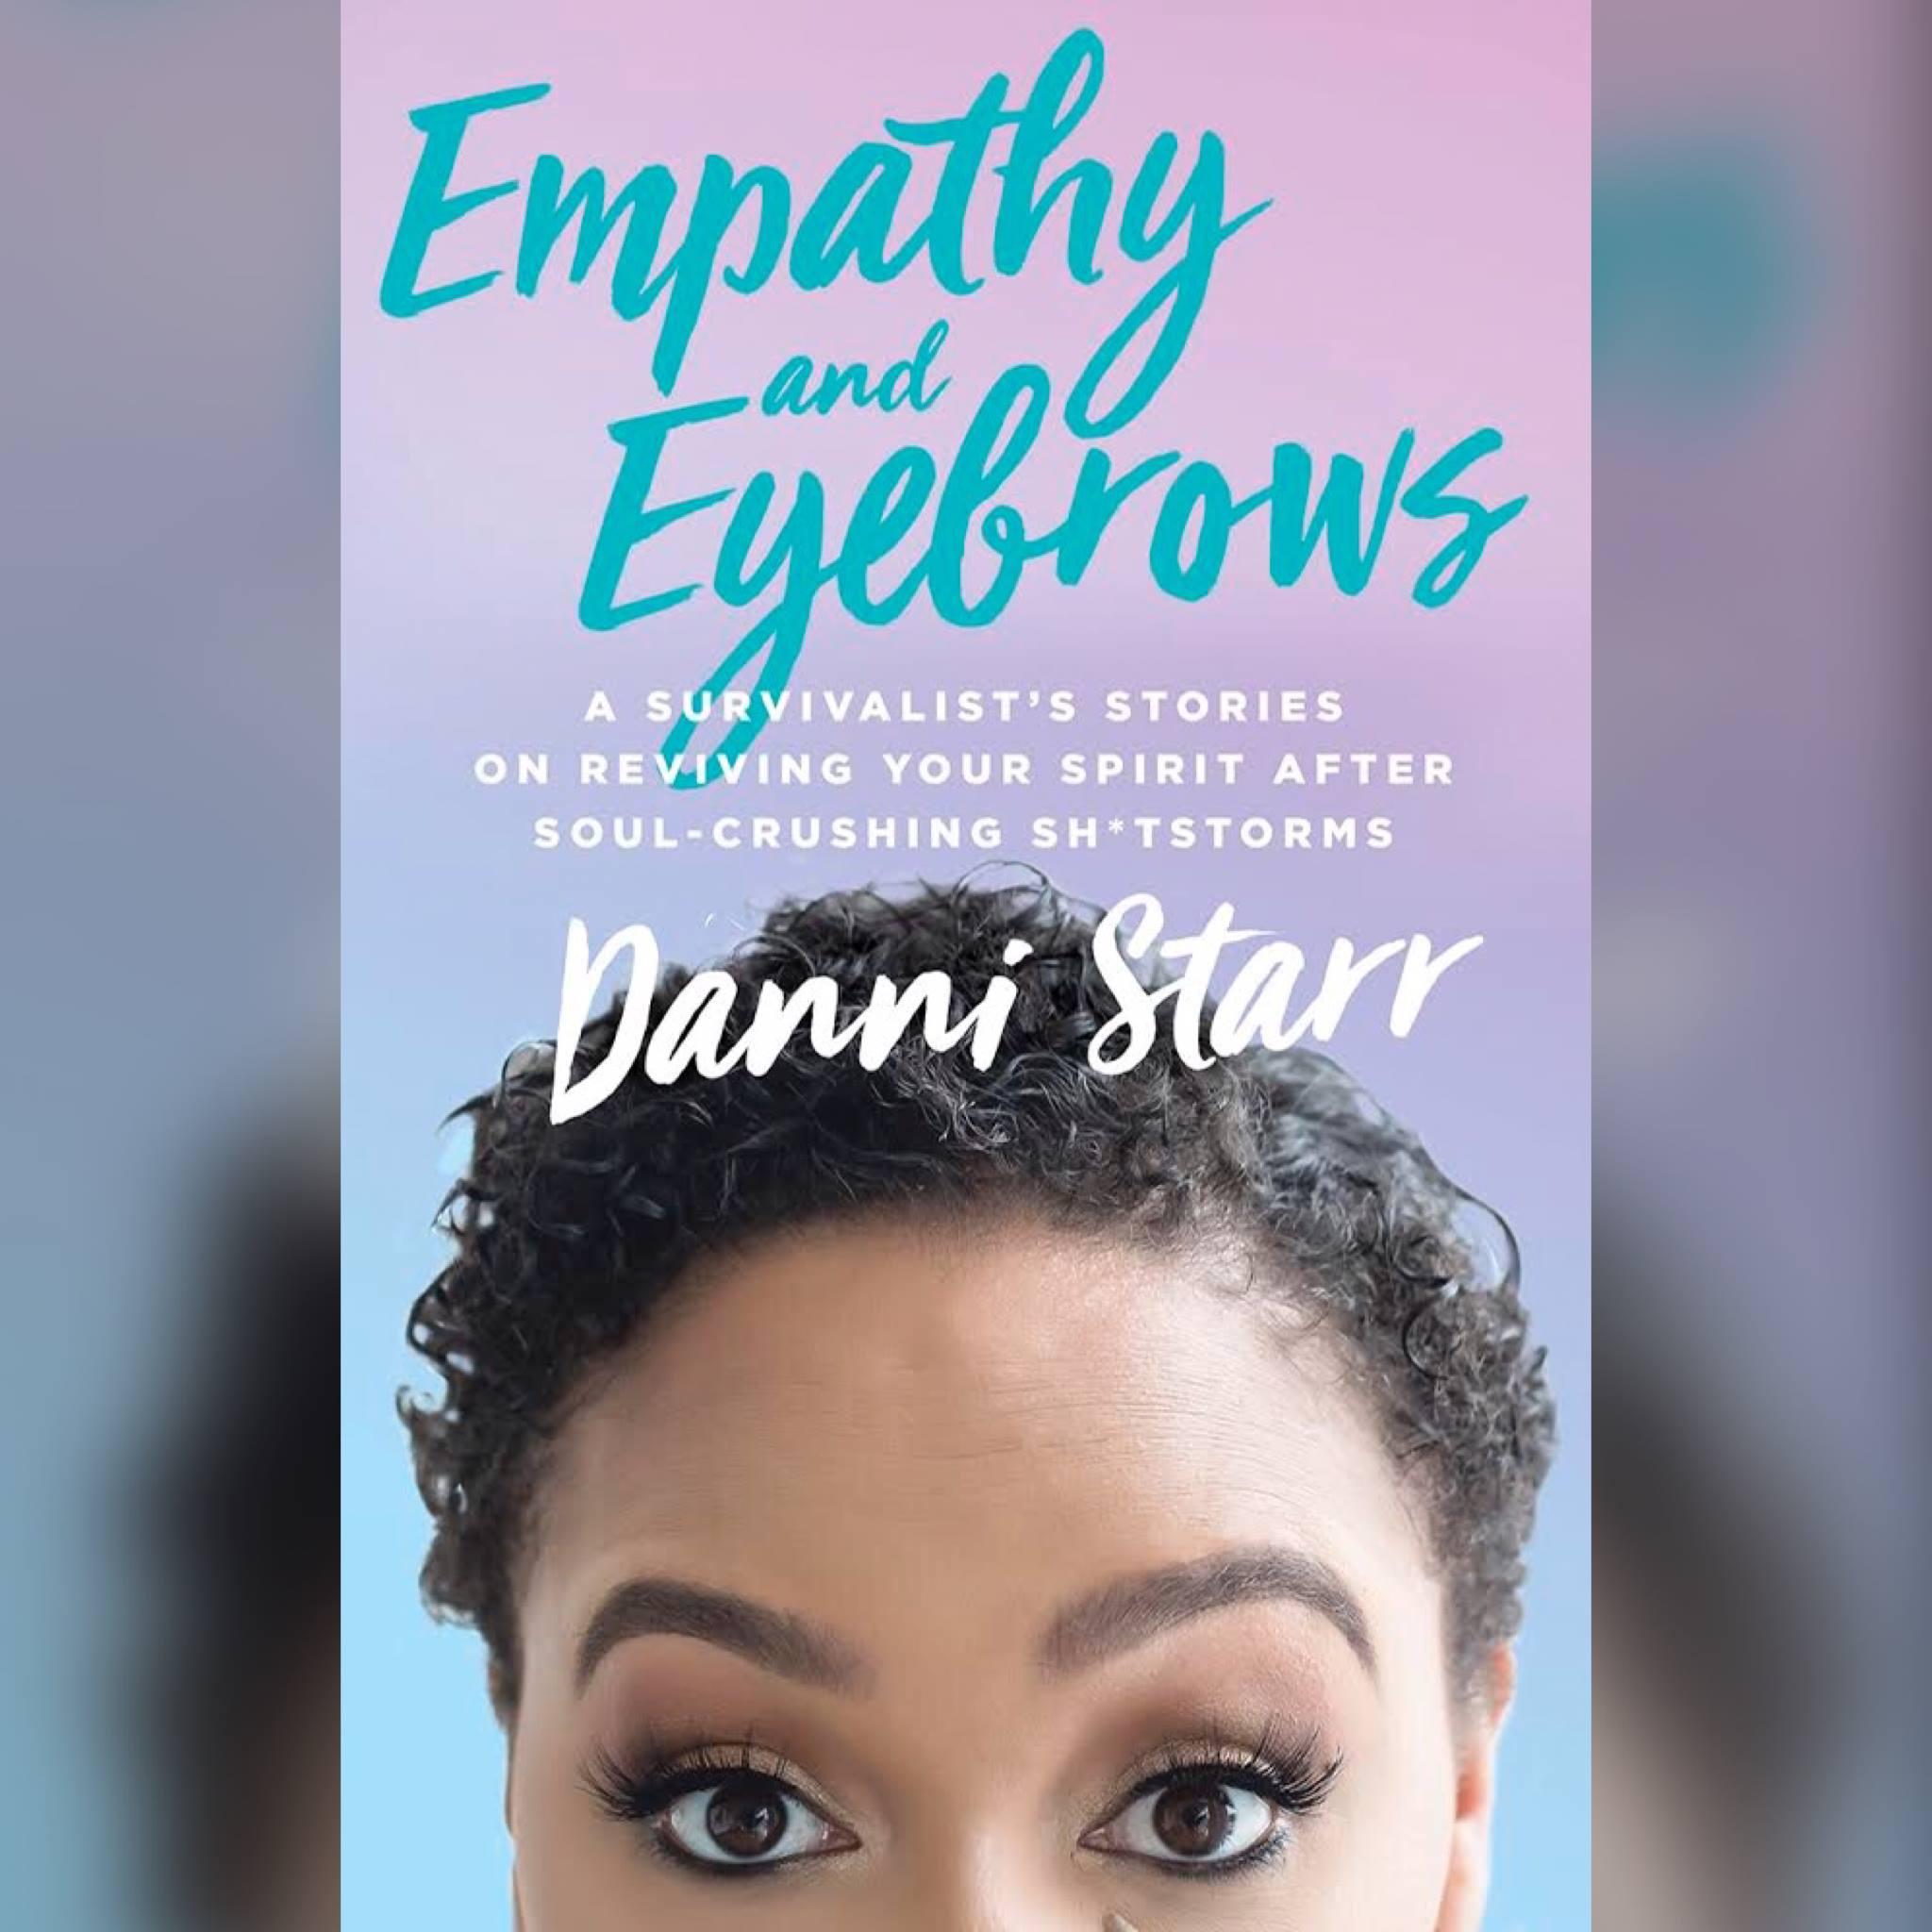 Empathy and Eyebrows